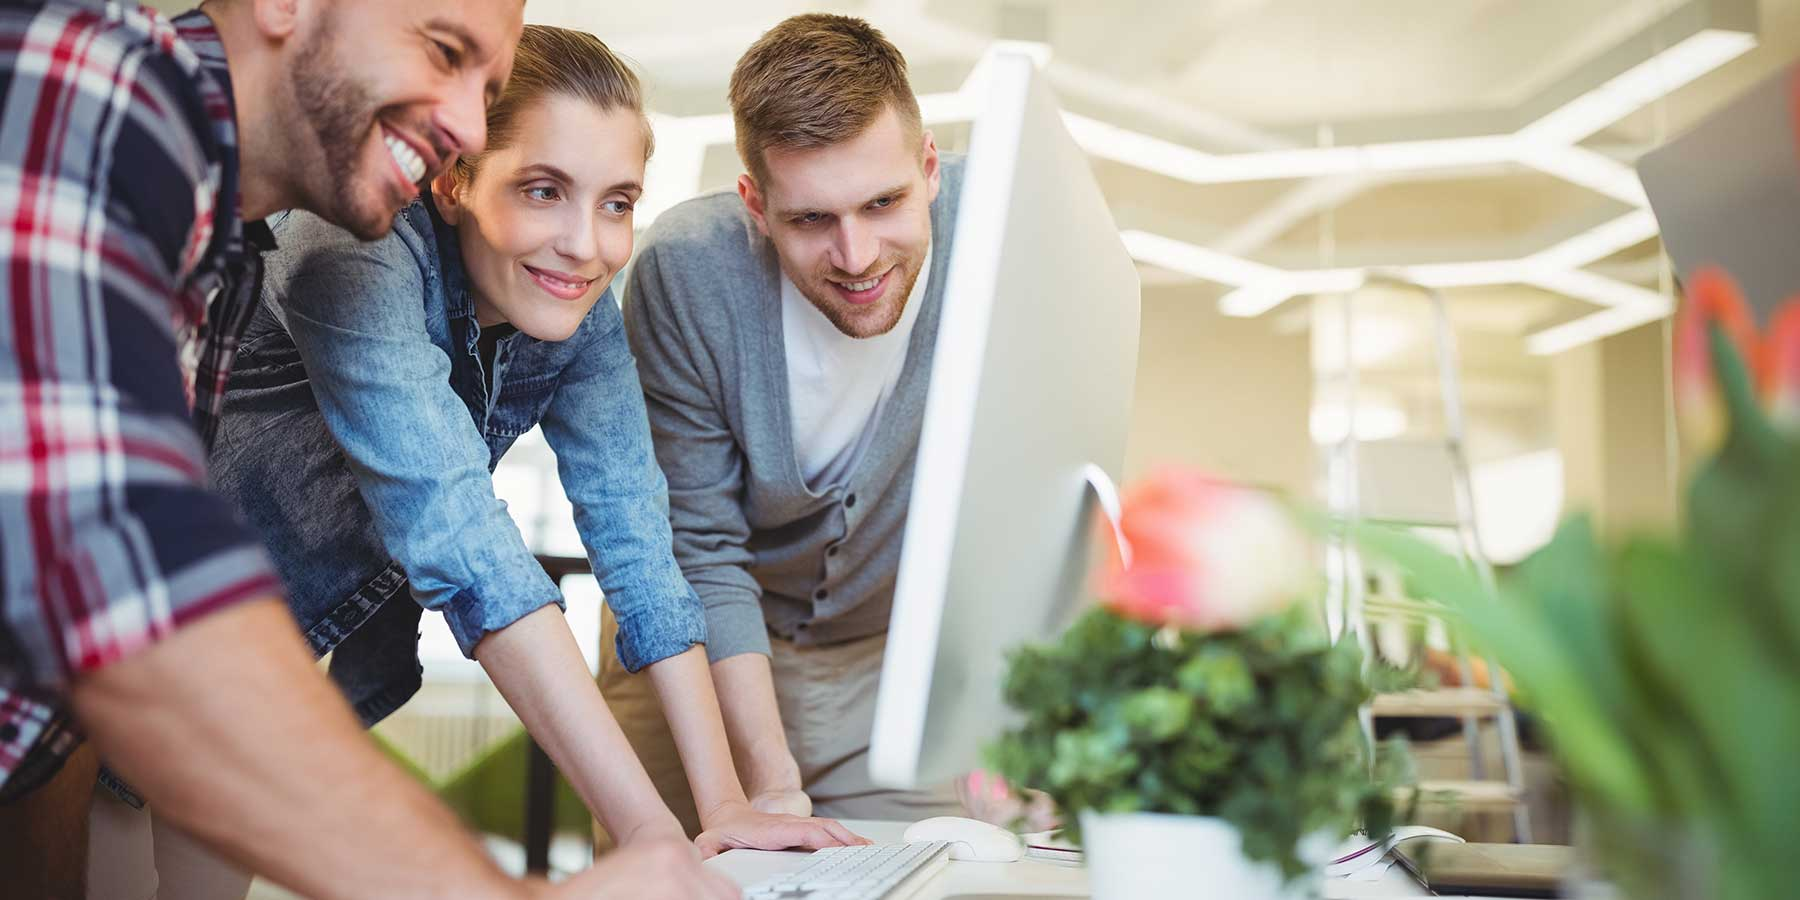 a woman and two men all in their twenties crowded around a desktop looking at the screen and smiling